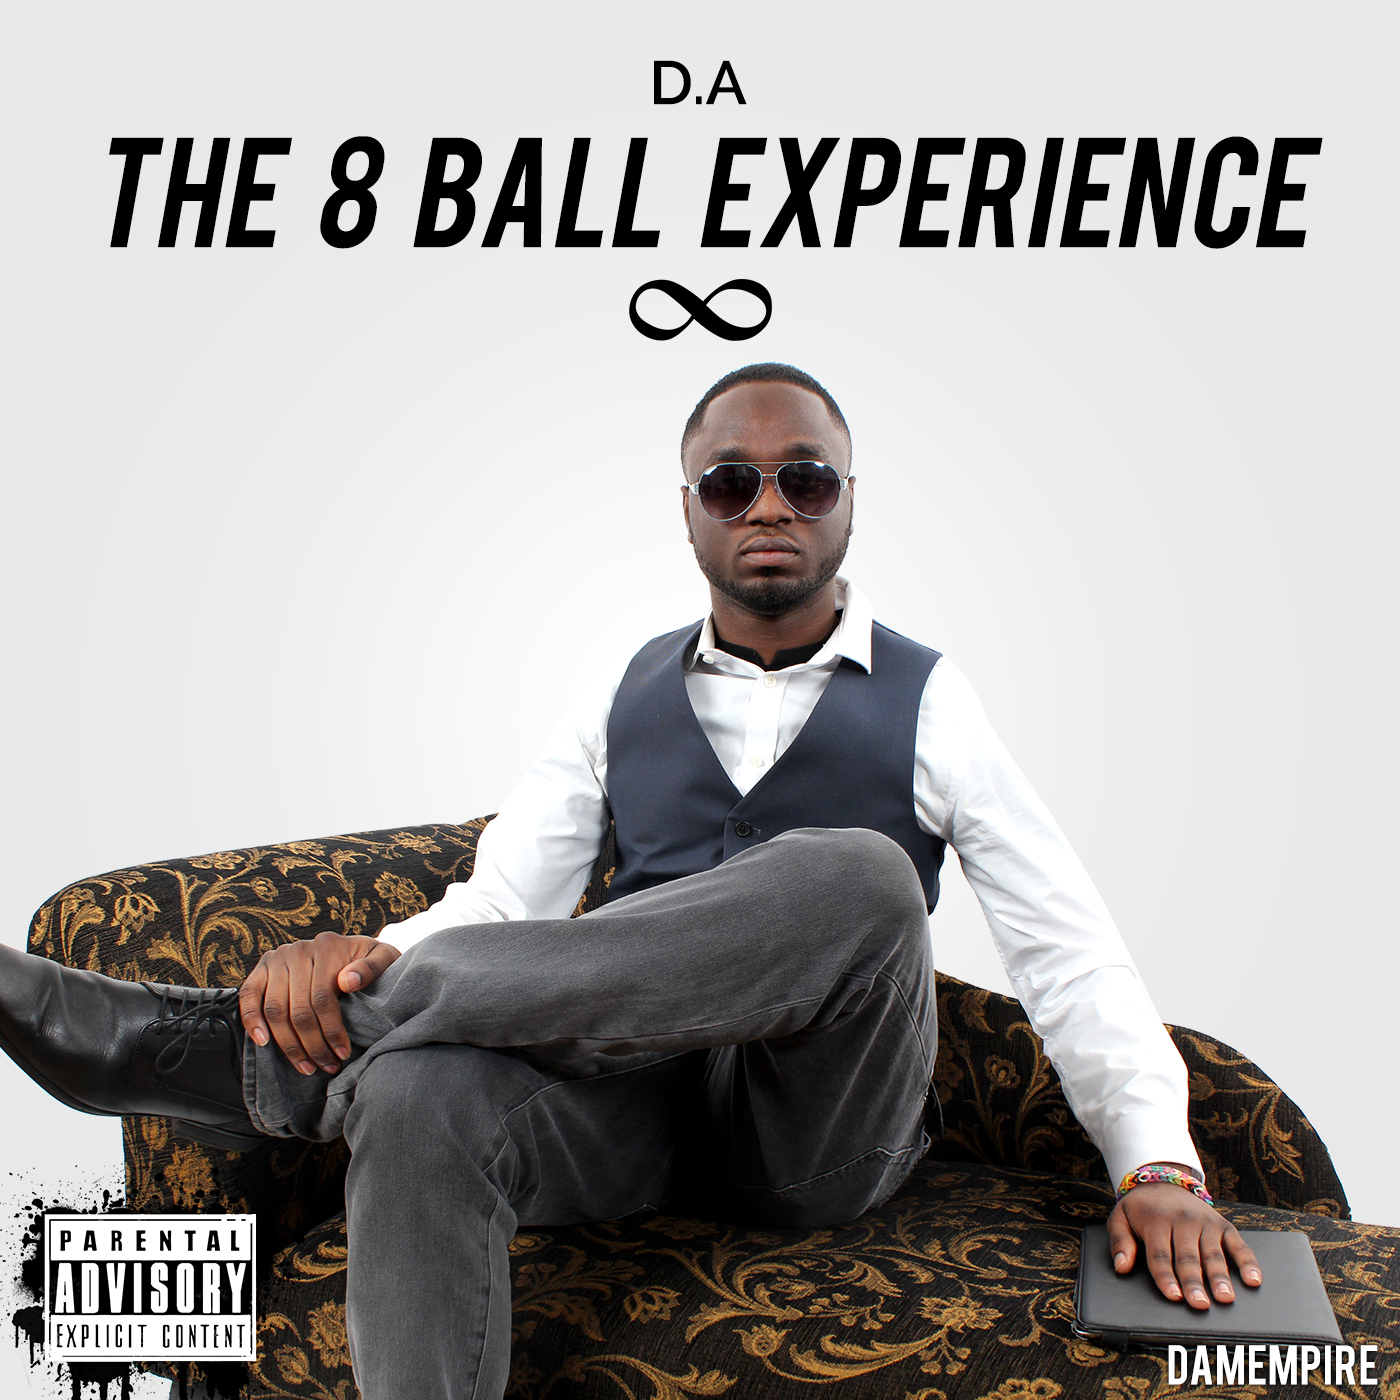 D.A - The 8 Ball Experience